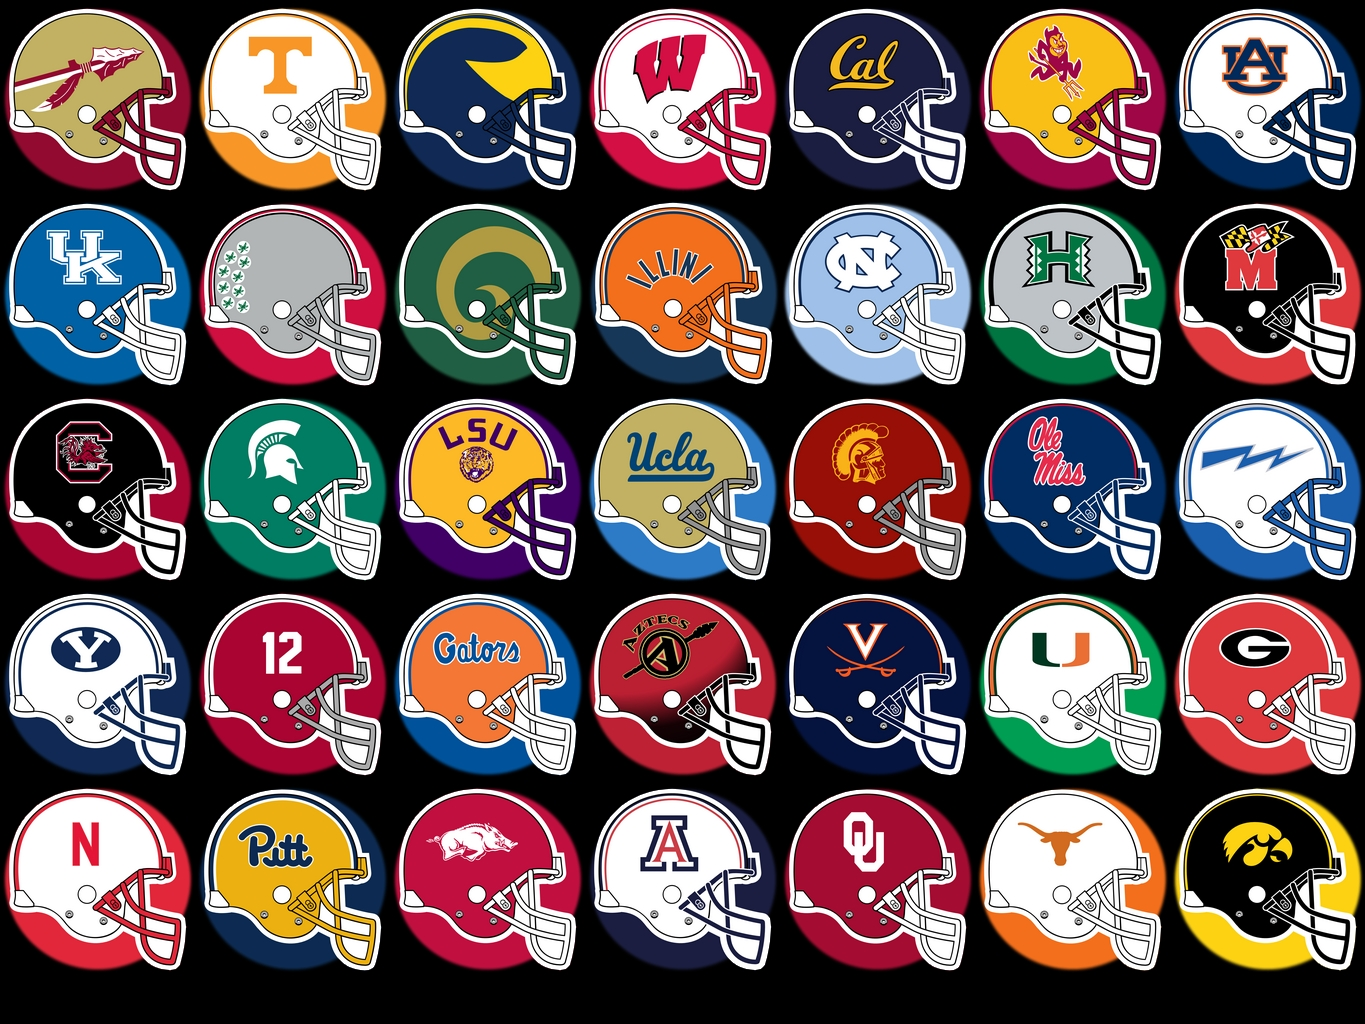 fottball games d1 college football